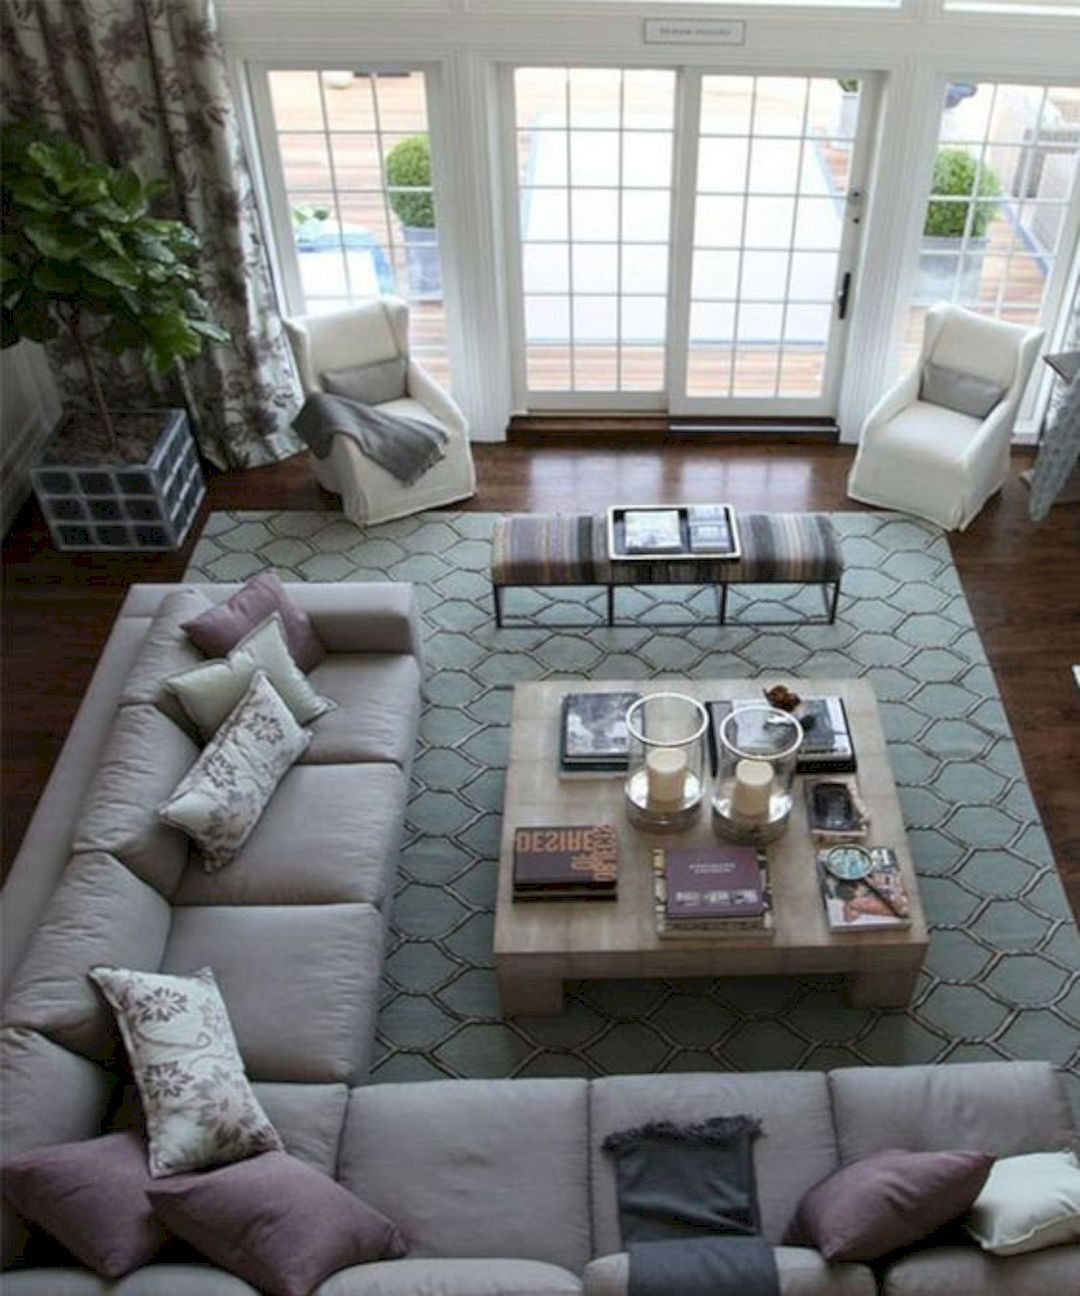 15 Amazing Furniture Layout Ideas To Arrange Your Family